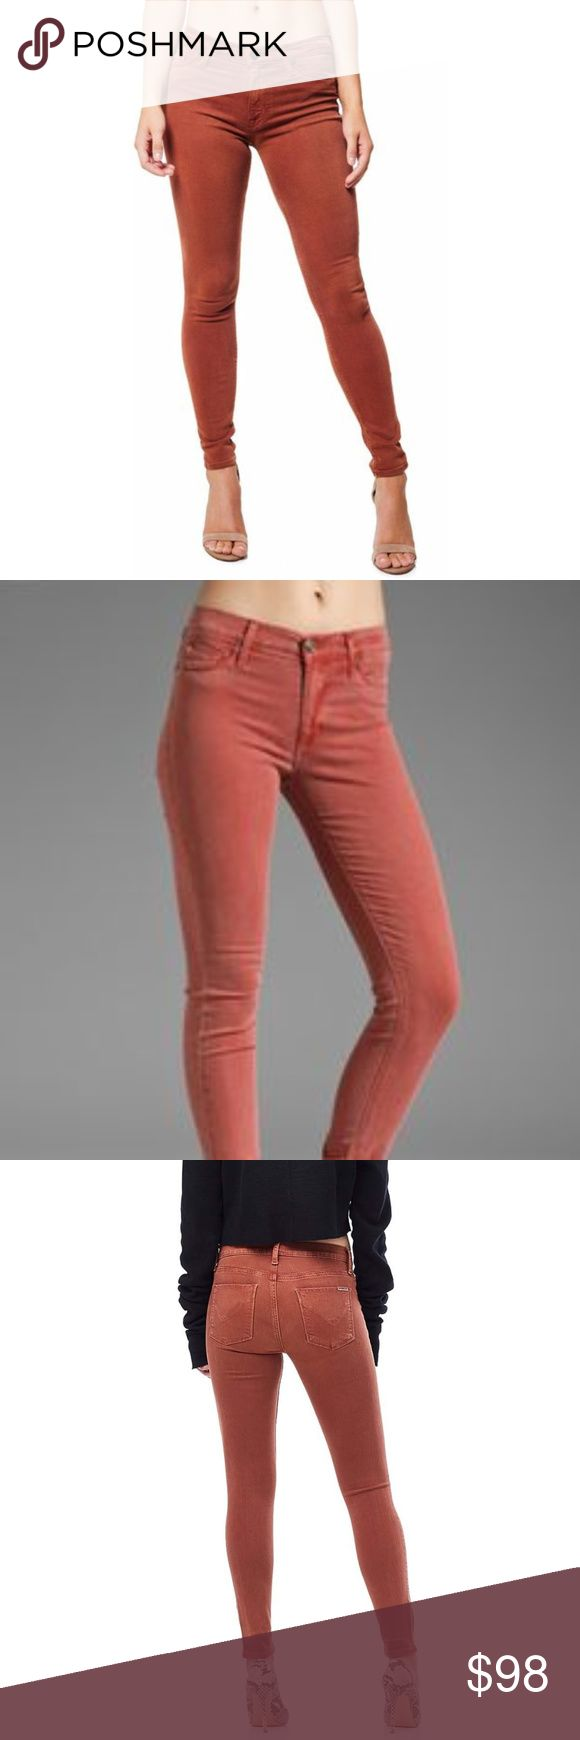 """HUDSON Midrise Ankle Super Skinny Jeans NWT! In Distressed Sepia Ankle-grazing skinny jeans constructed from American-made stretch denim add a svelte, footwear-flaunting look to your denim rotation.  *27"""" inseam; 11"""" leg opening; 9 1/2"""" front rise; 13"""" back rise (size 29). *Zip fly with button closure. *Five-pocket style. *43% viscose, 33% cotton, 17% lyocell, 5% polyester, 2% elastane.  ❌NO TRADES  I❤️Bundles ❤️REASONABLE OFFERS ONLY PLEASE❤️ Hudson Jeans Jeans Skinny"""